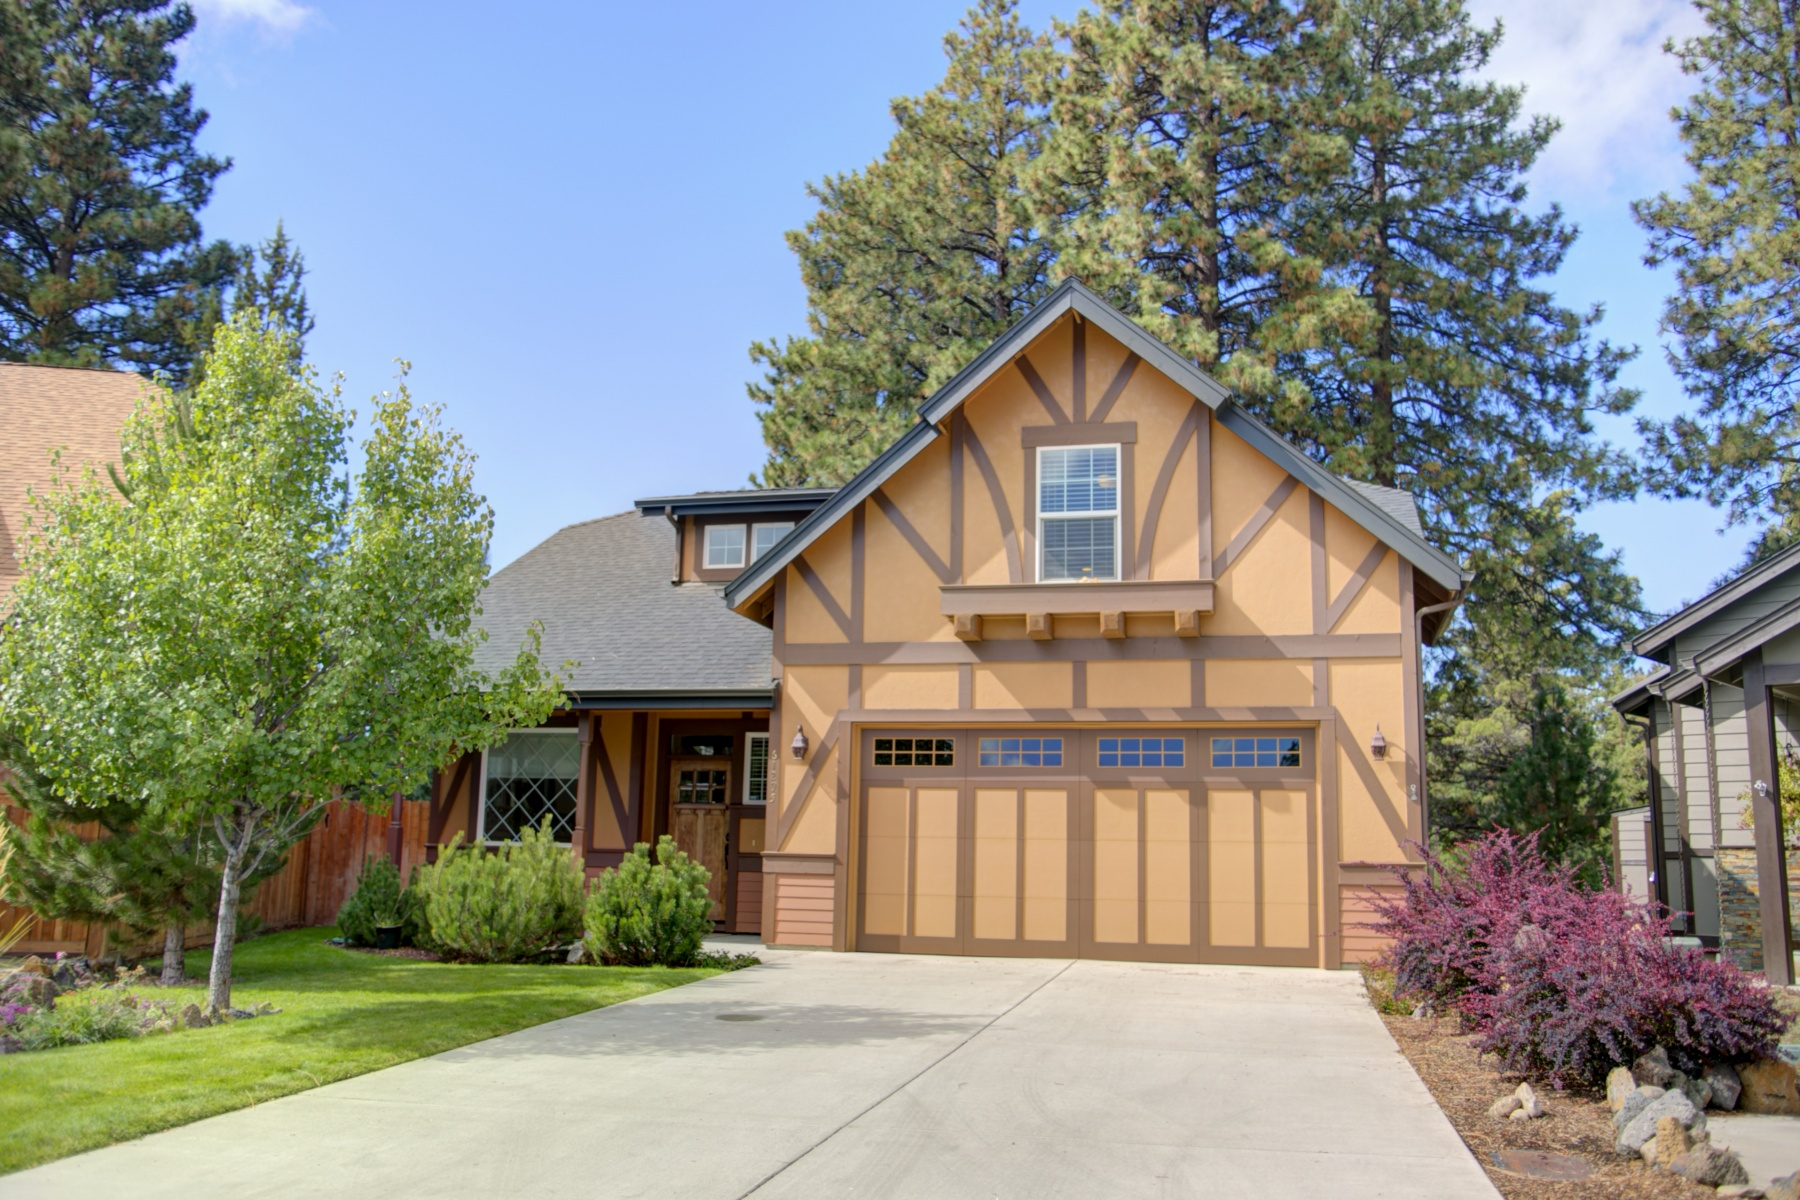 Single Family Home for Sale at Master on the Main in SE Bend! 61295 Ring Bearer Court, Bend, Oregon, 97702 United States